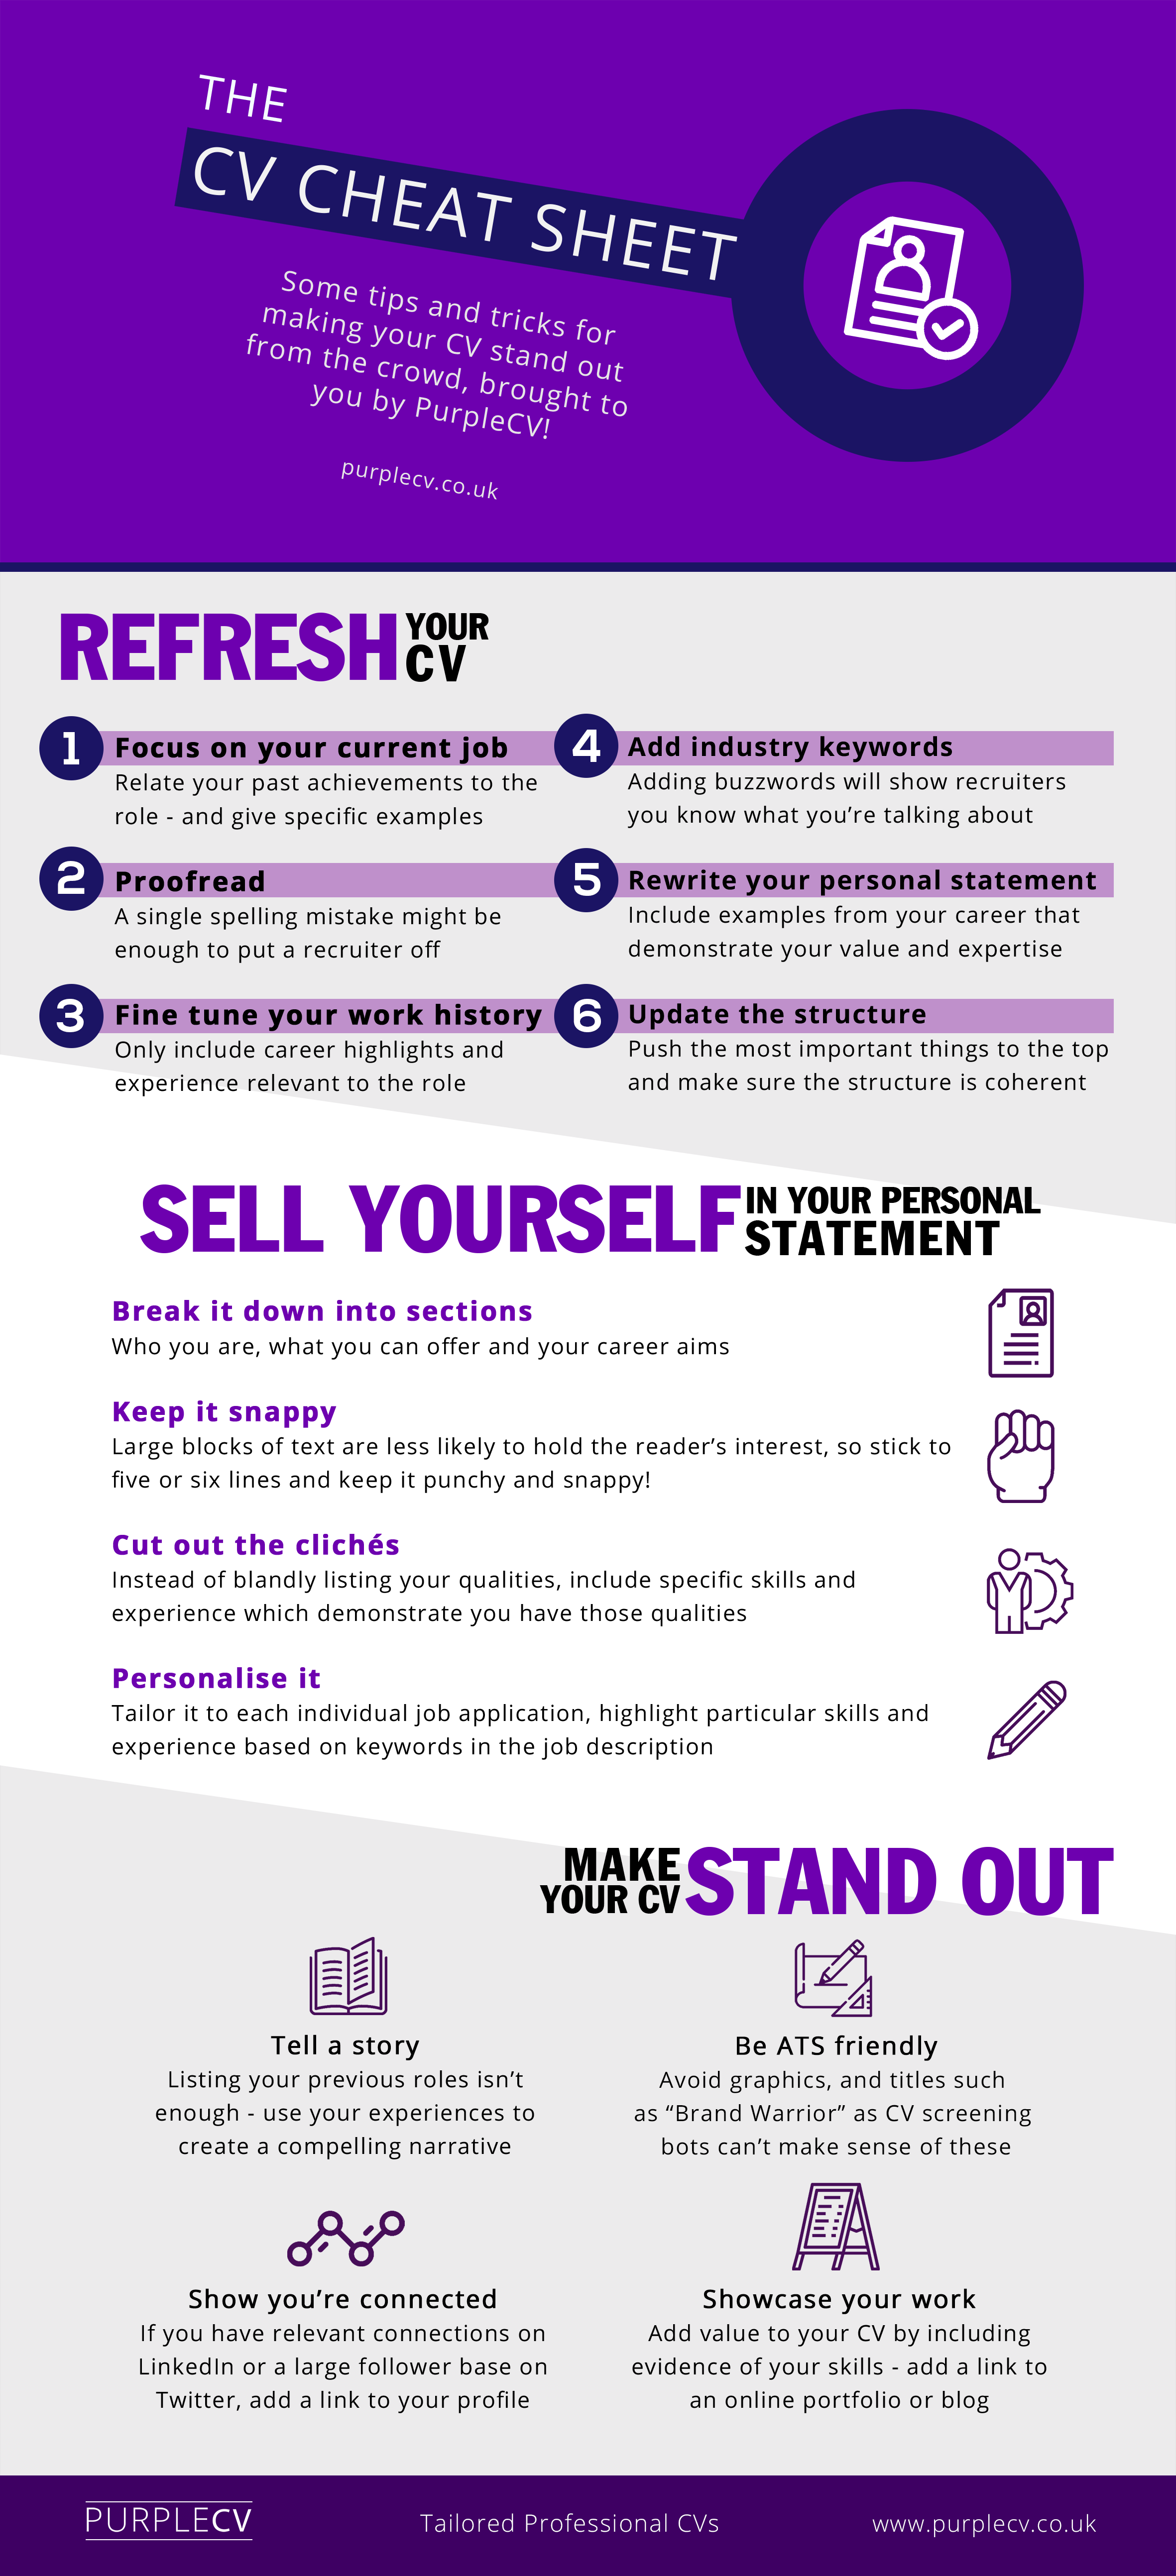 How To Make Your CV Stand Out Infographic